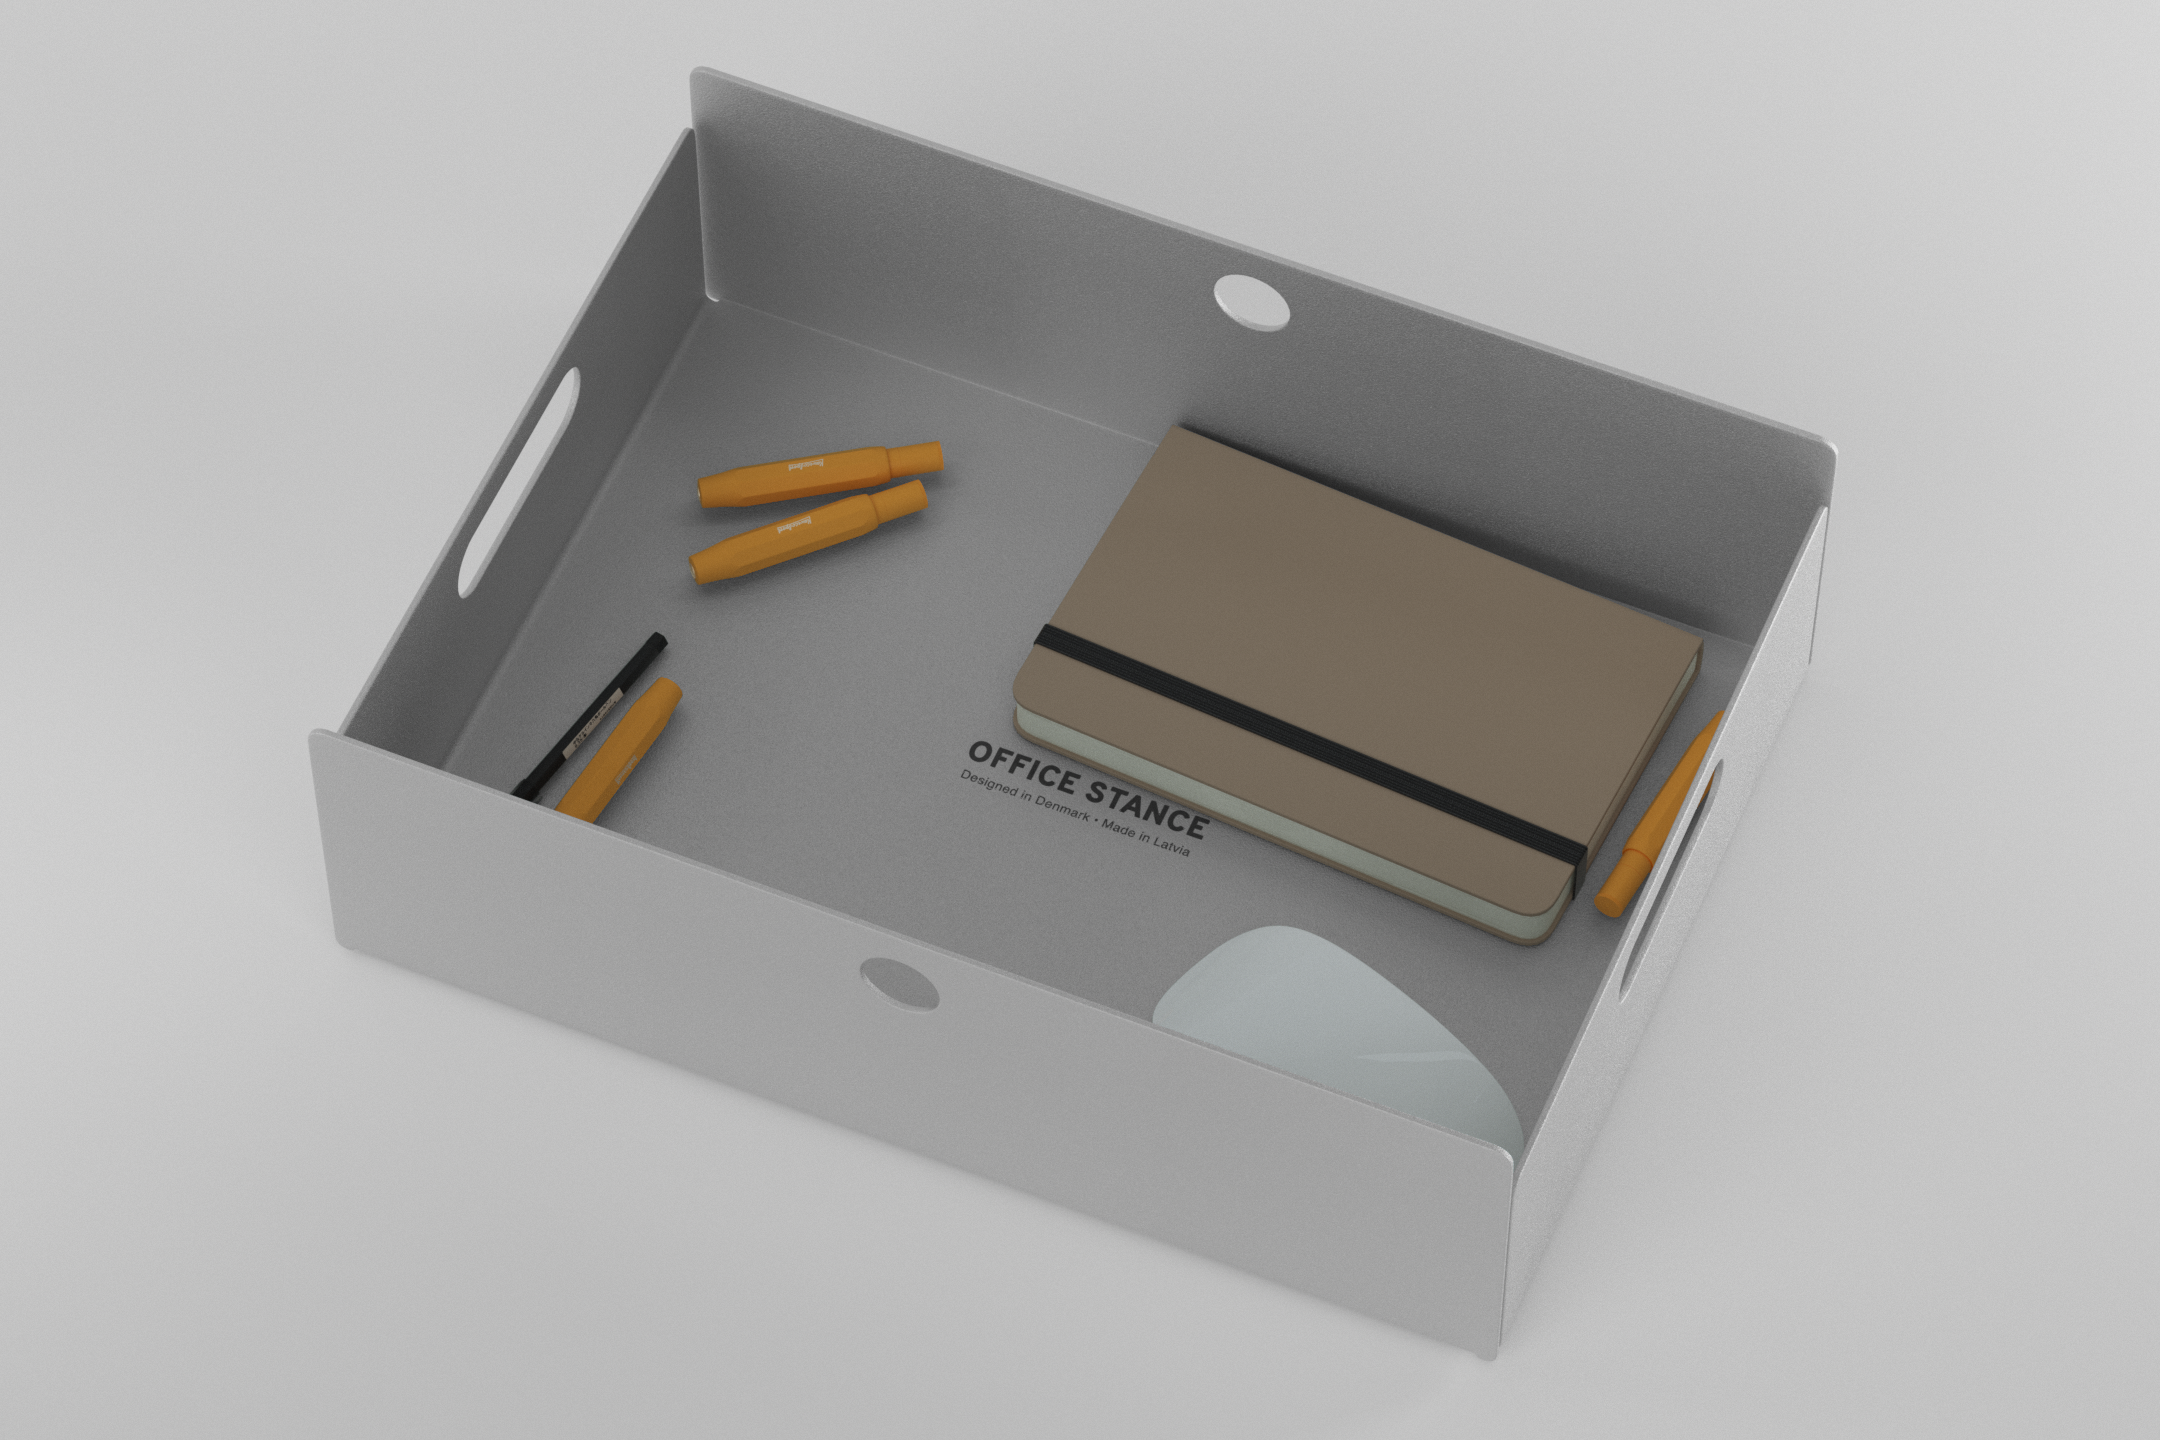 The Drawer - light grey with items in it